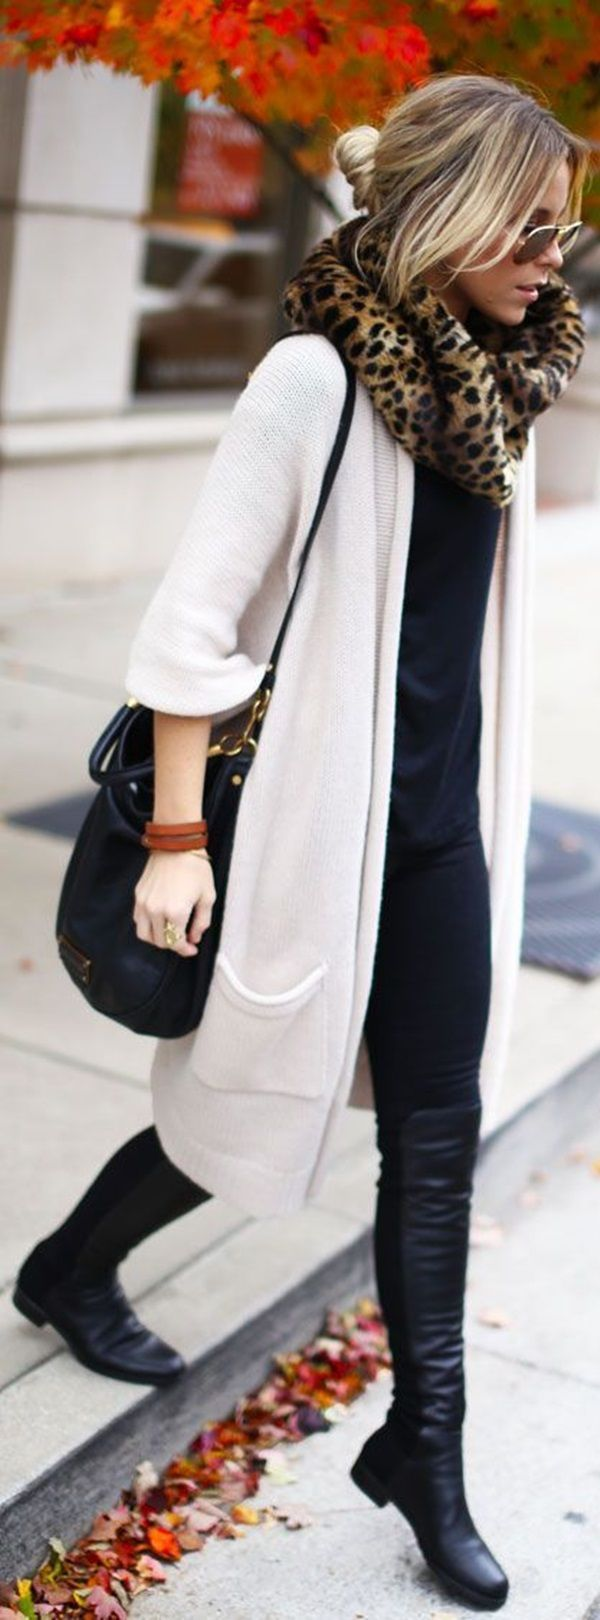 40 Stylish #Fall #Outfits For Women | http://stylishwife.com/2014/09/stylish-fall-outfits-for-women.html